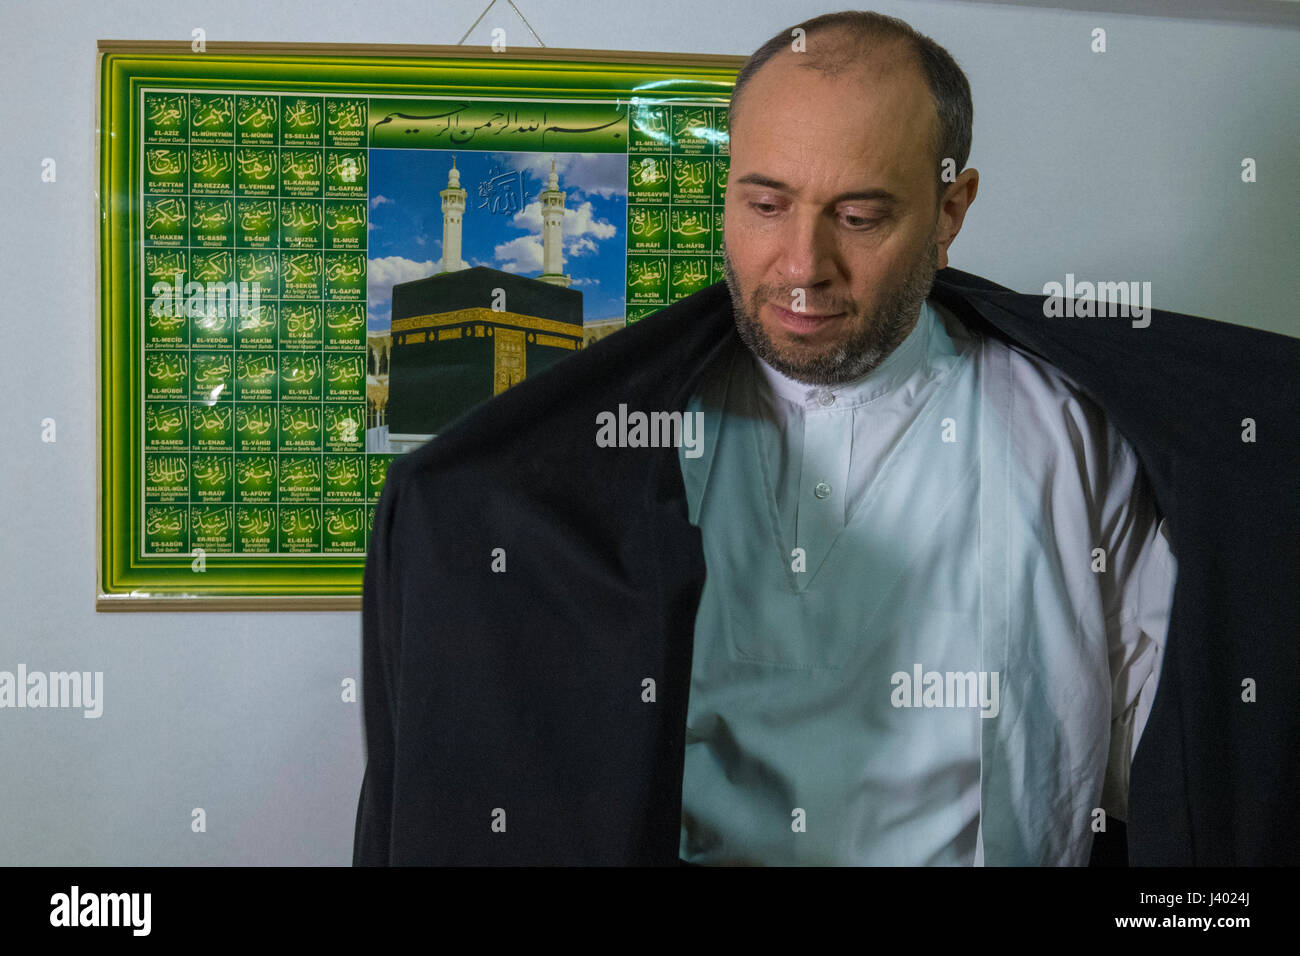 Dervish Robing, Putting on Hirka, black coat, in front of a picture of Kabba, Yaqup Baba of Fatih, Istanbul, TURKEY - Stock Image